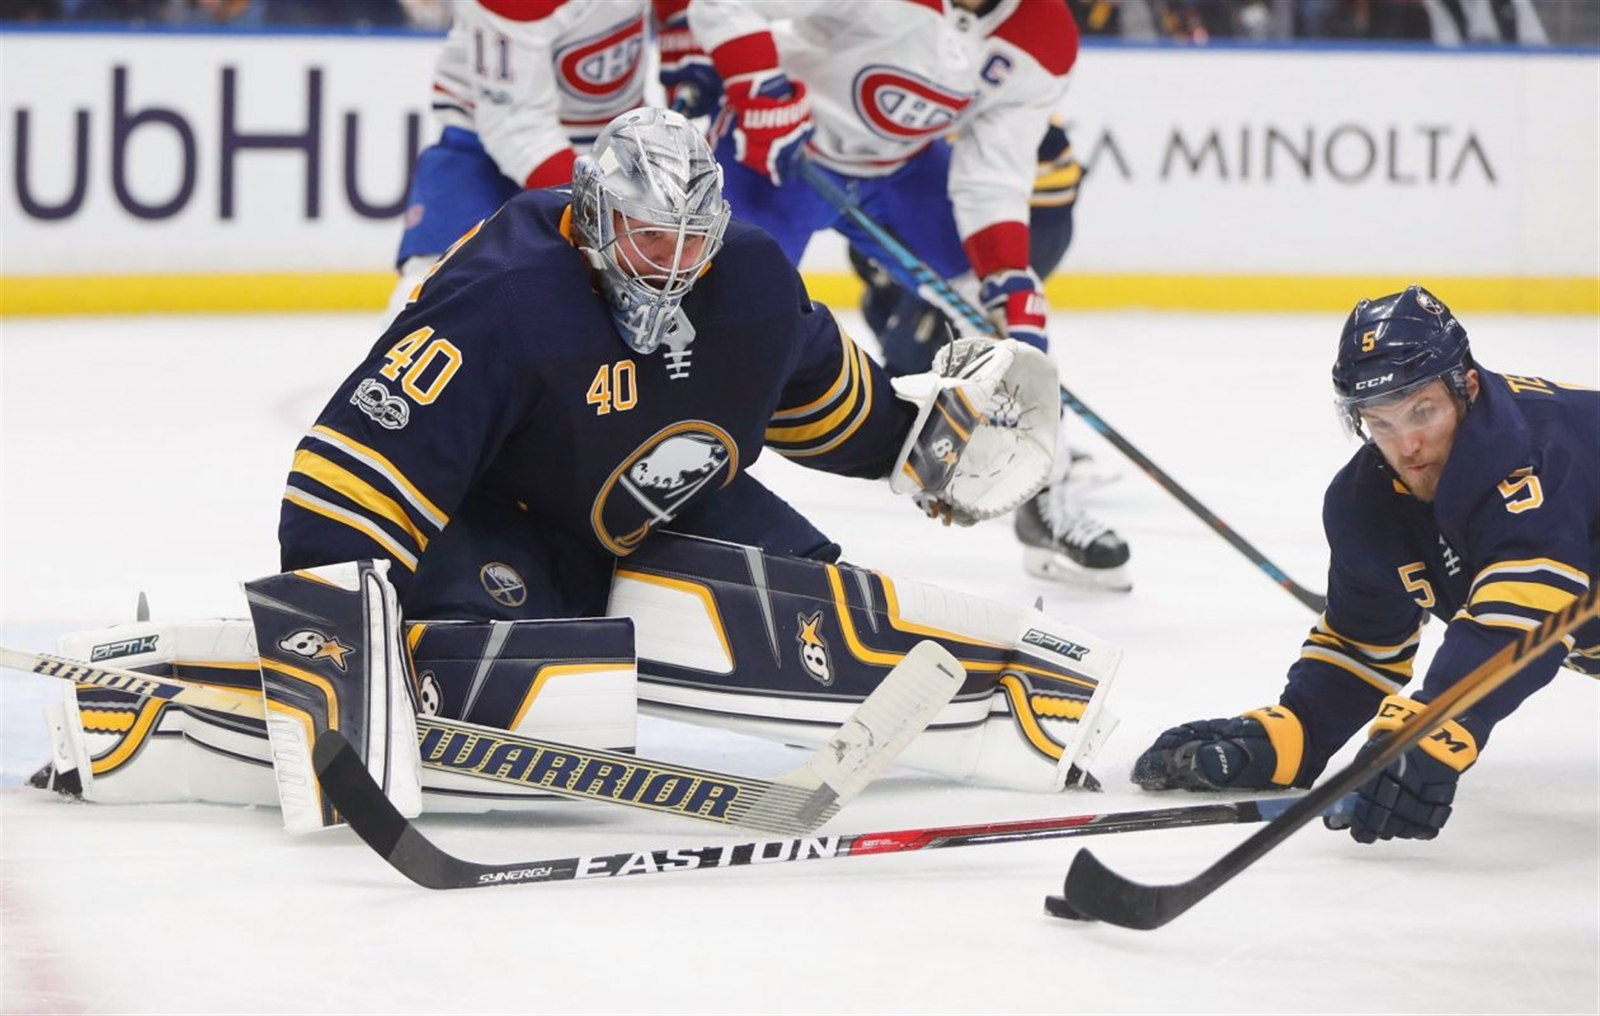 Oct. 5: The season opens with a 3-2 shootout loss to Montreal but Sabres play entertaining style with 45 shots on goal u2013 a total they never reached again.